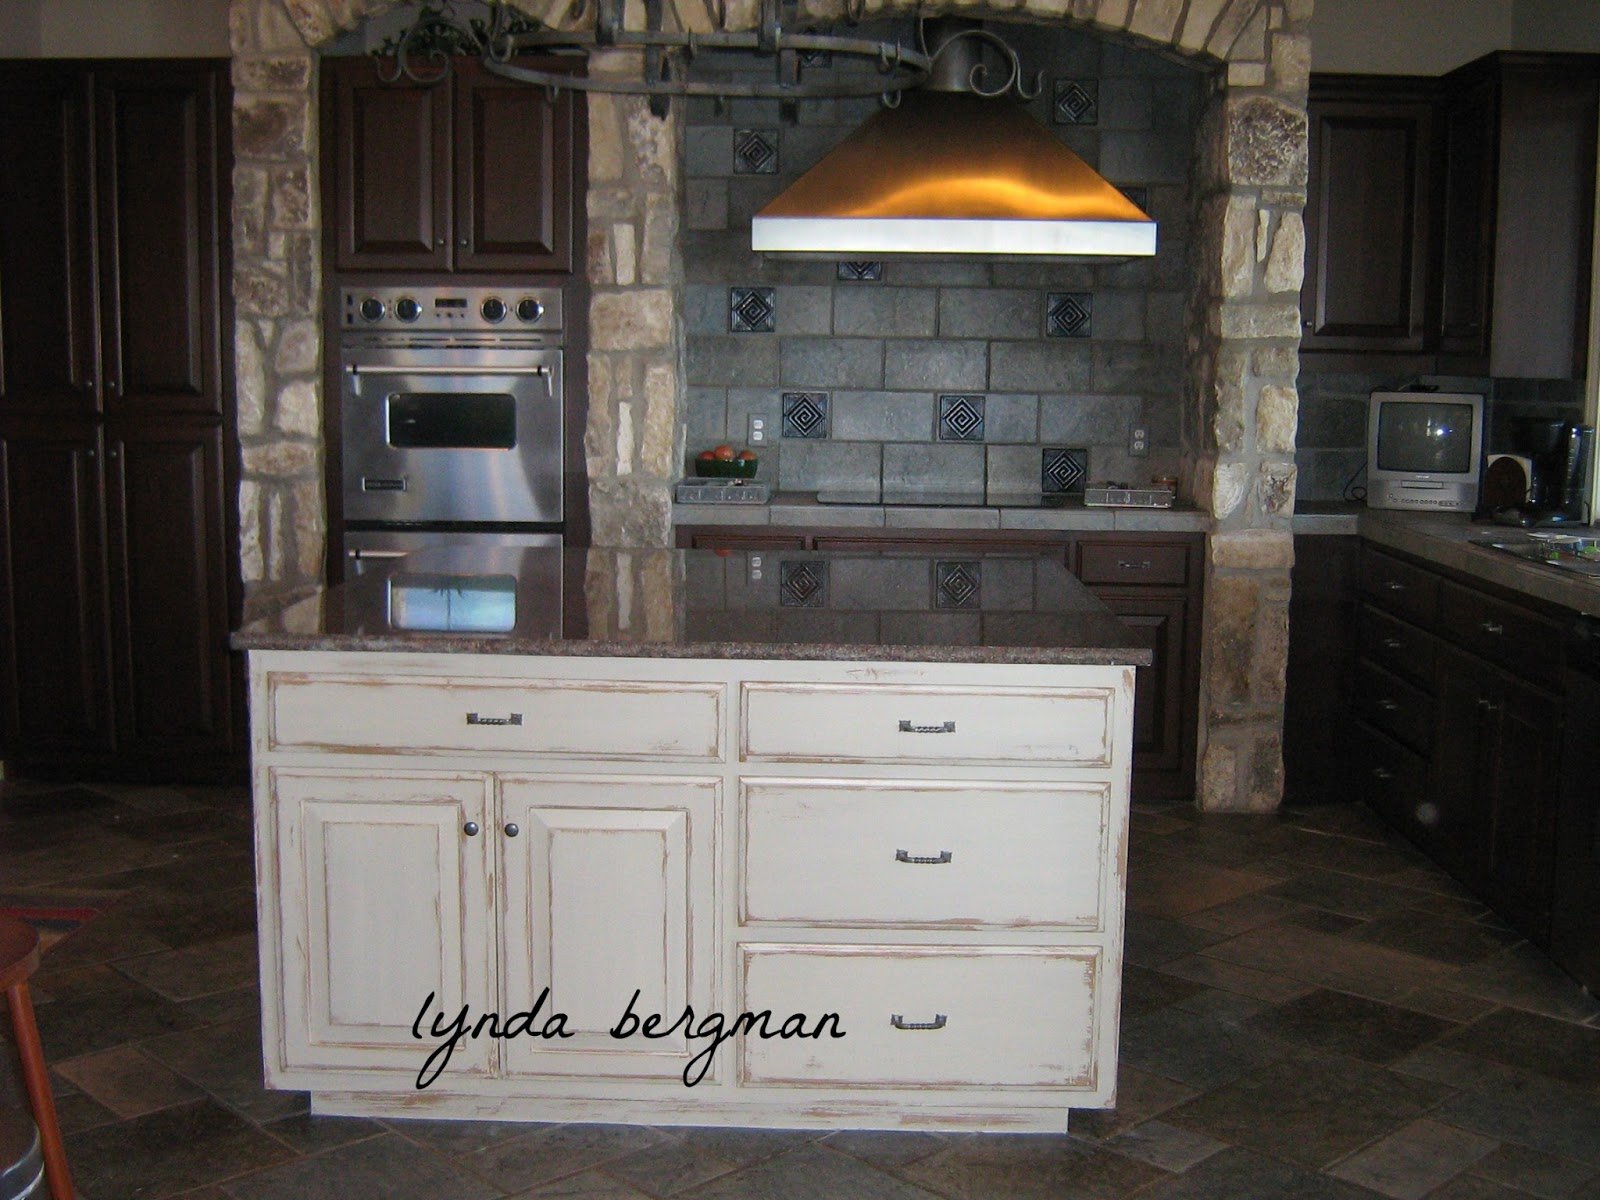 lynda bergman decorative artisan white kitchen cabinets to a hand